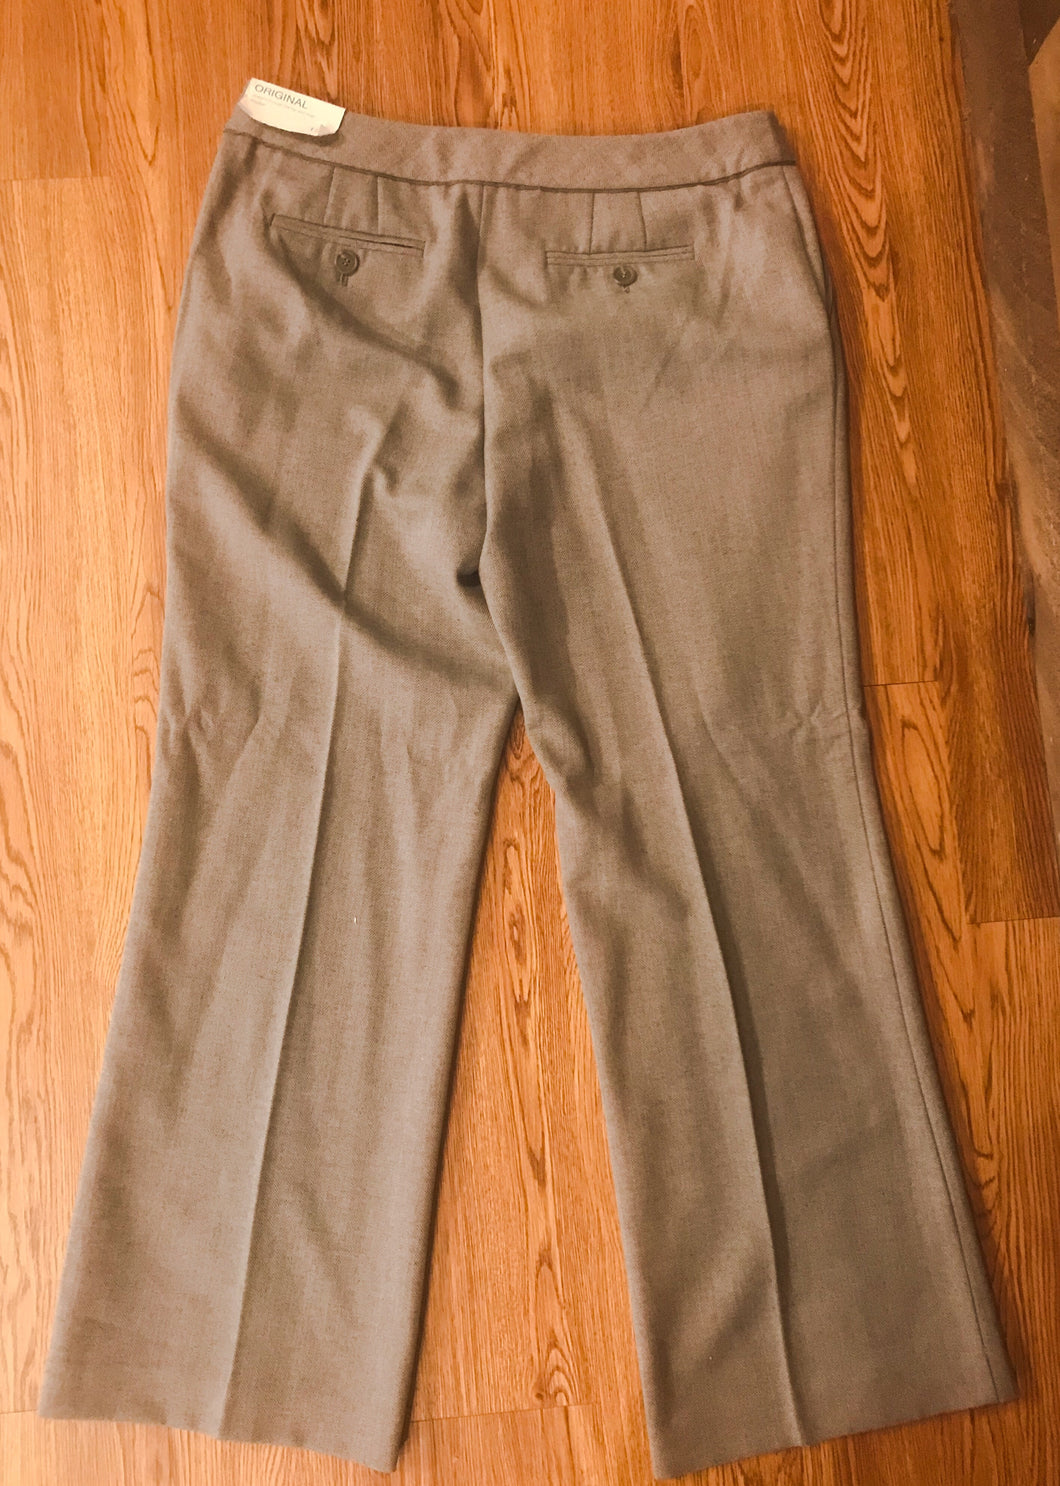 Women's LOFT Gray Trouser Pants